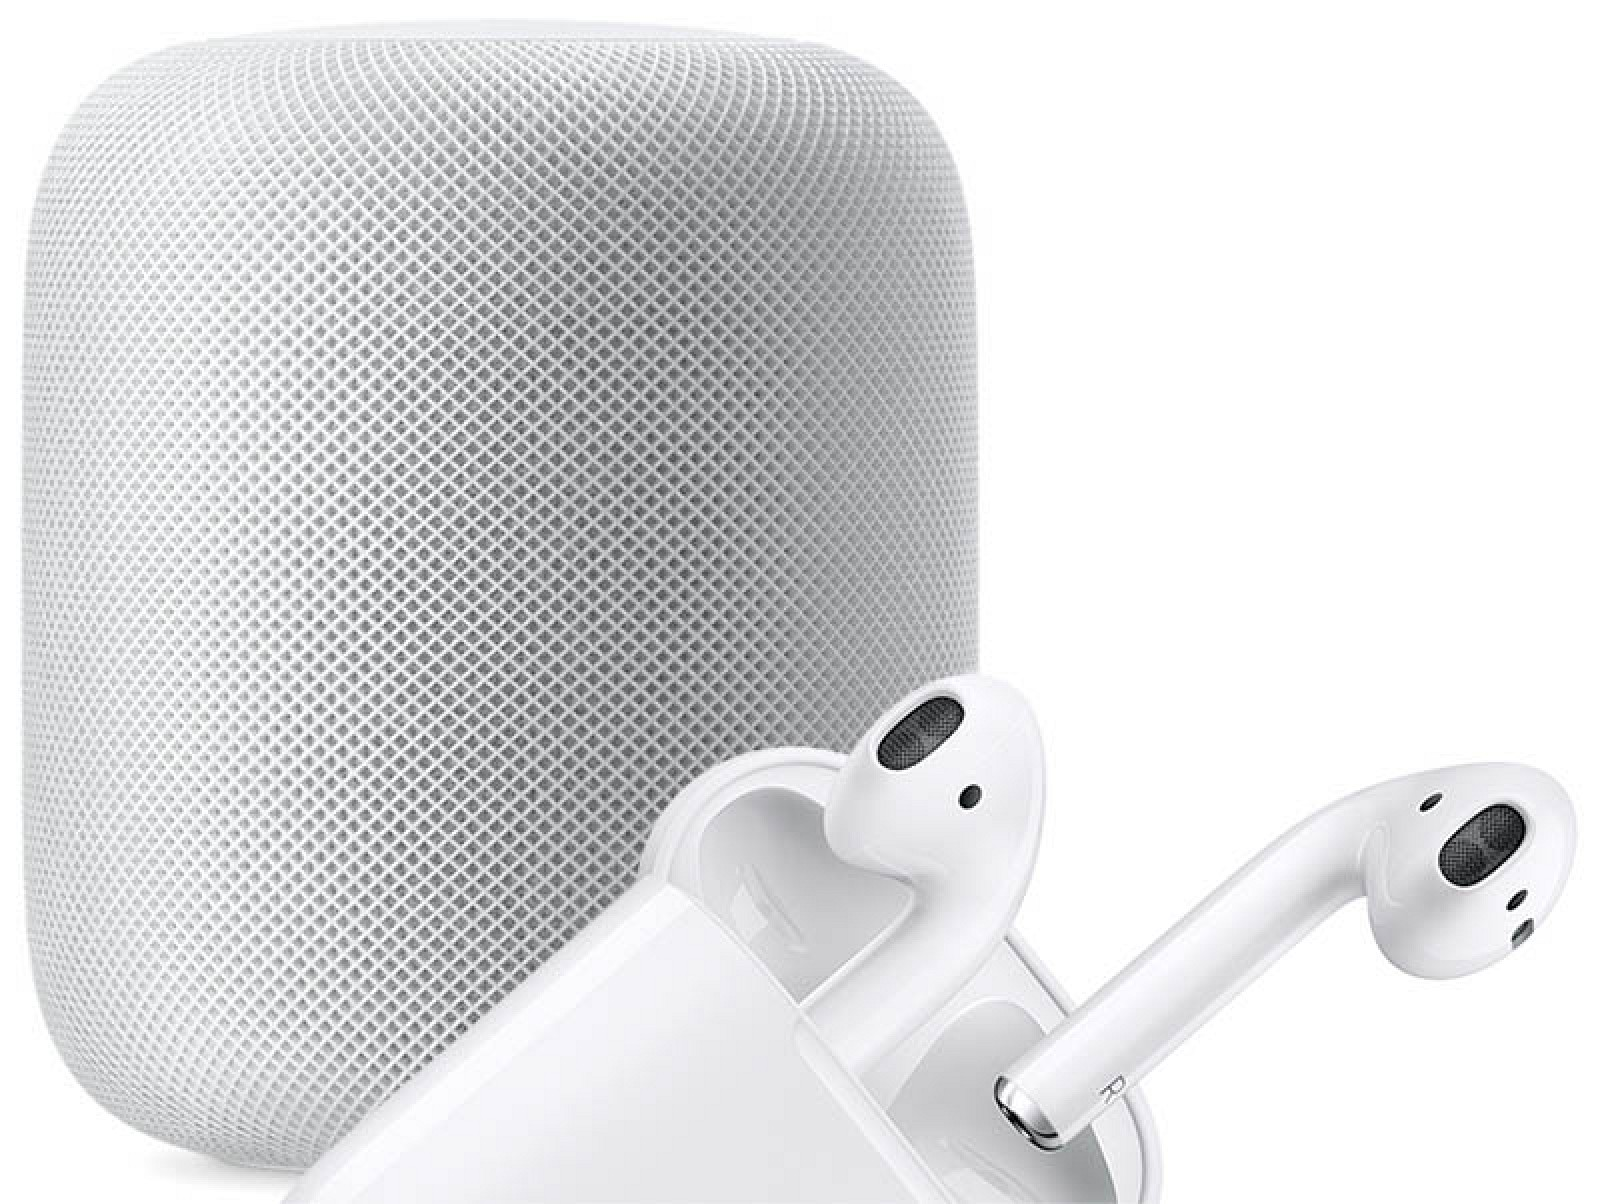 Gurman: Higher-End AirPods to Launch in 2019, New HomePod and Over-Ear Headphones Also Likely Next Year